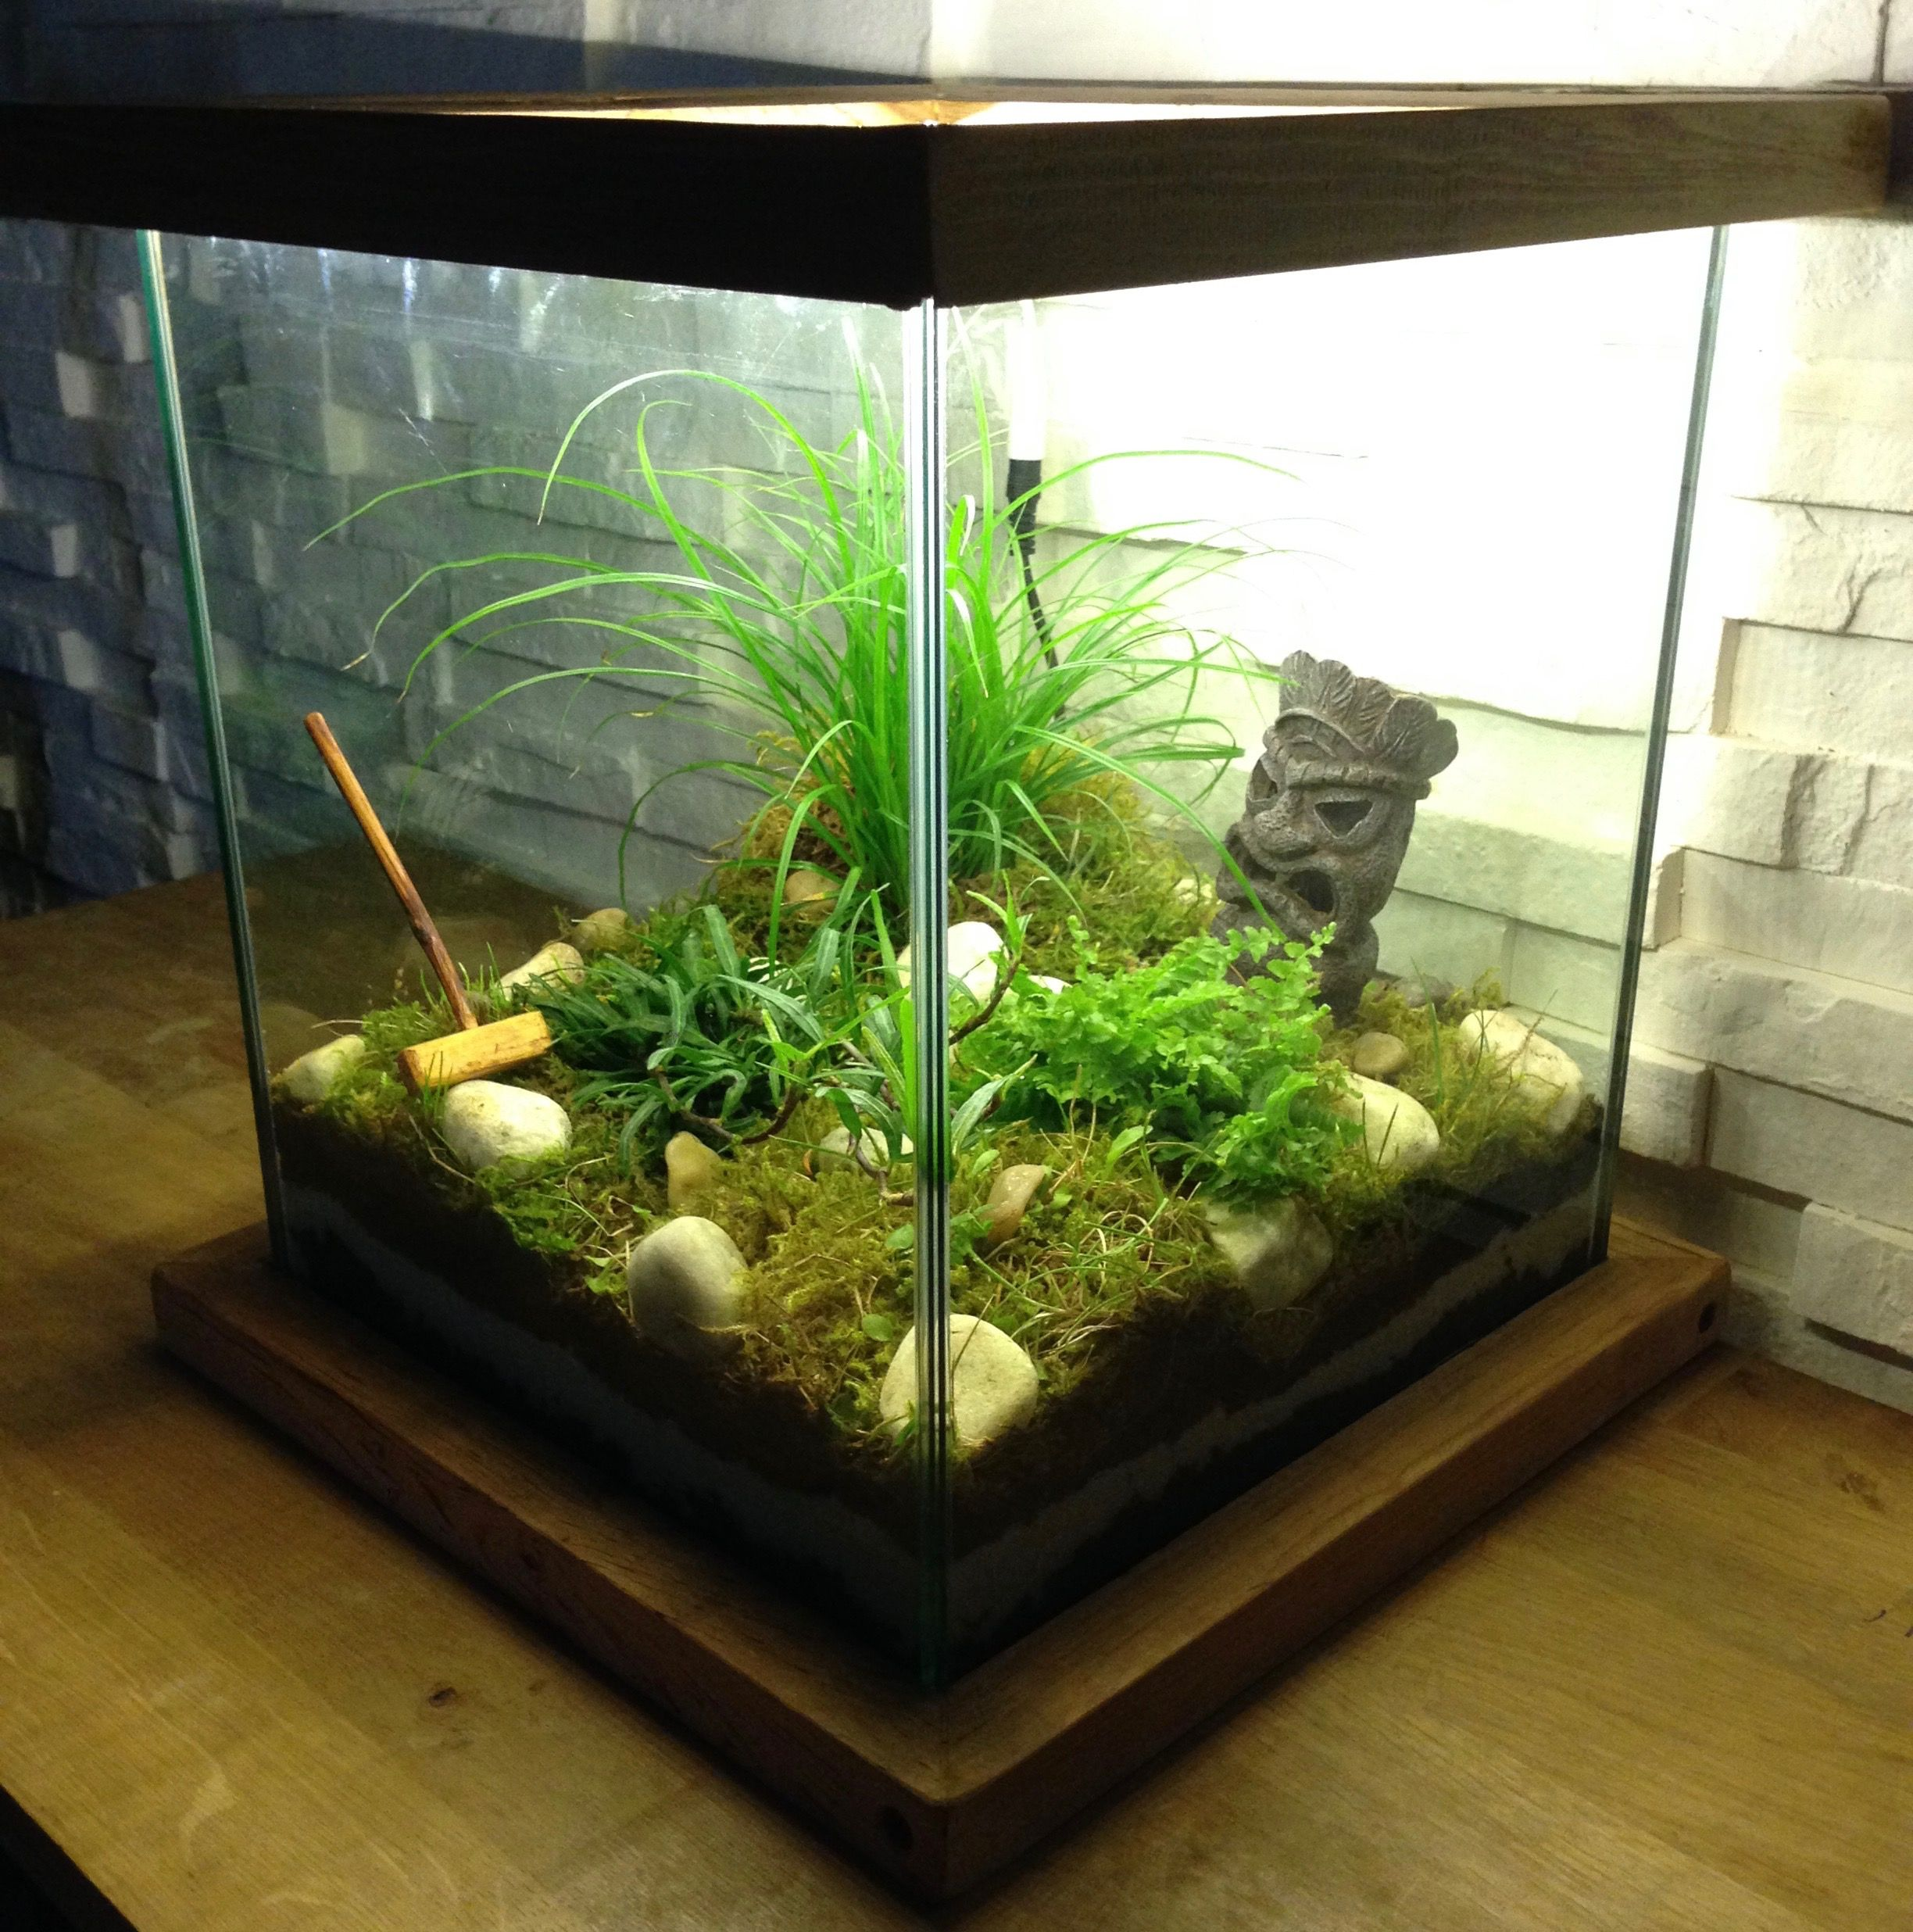 Creer un joli jardin d interieur recycler un aquarium for Aquarium interieur